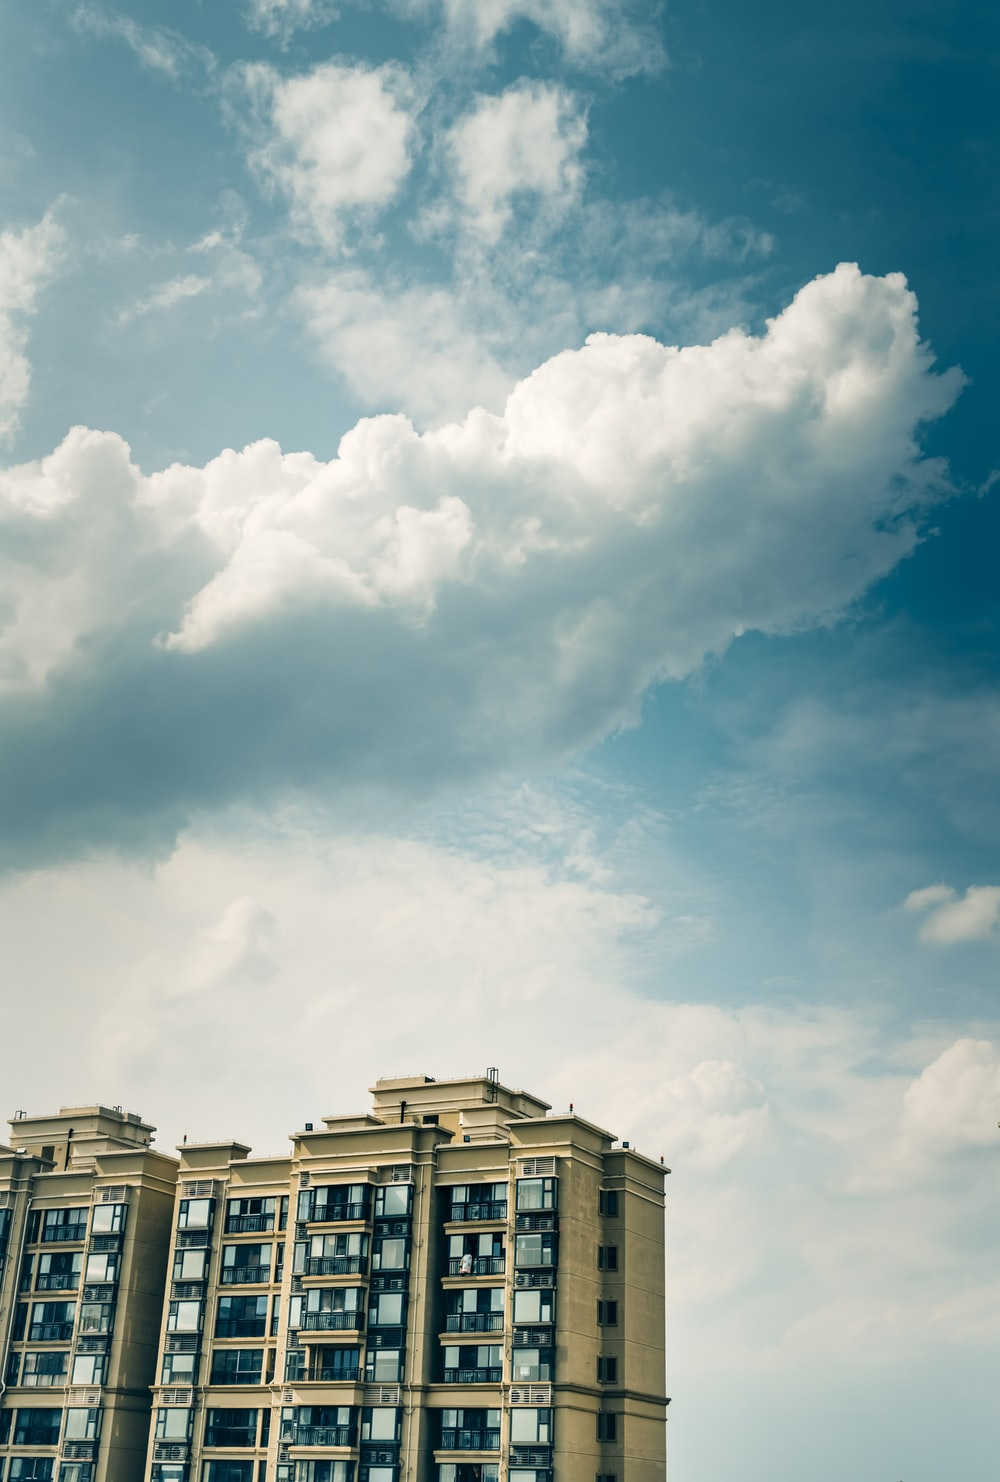 white and brown concrete building under white clouds and blue sky during daytime